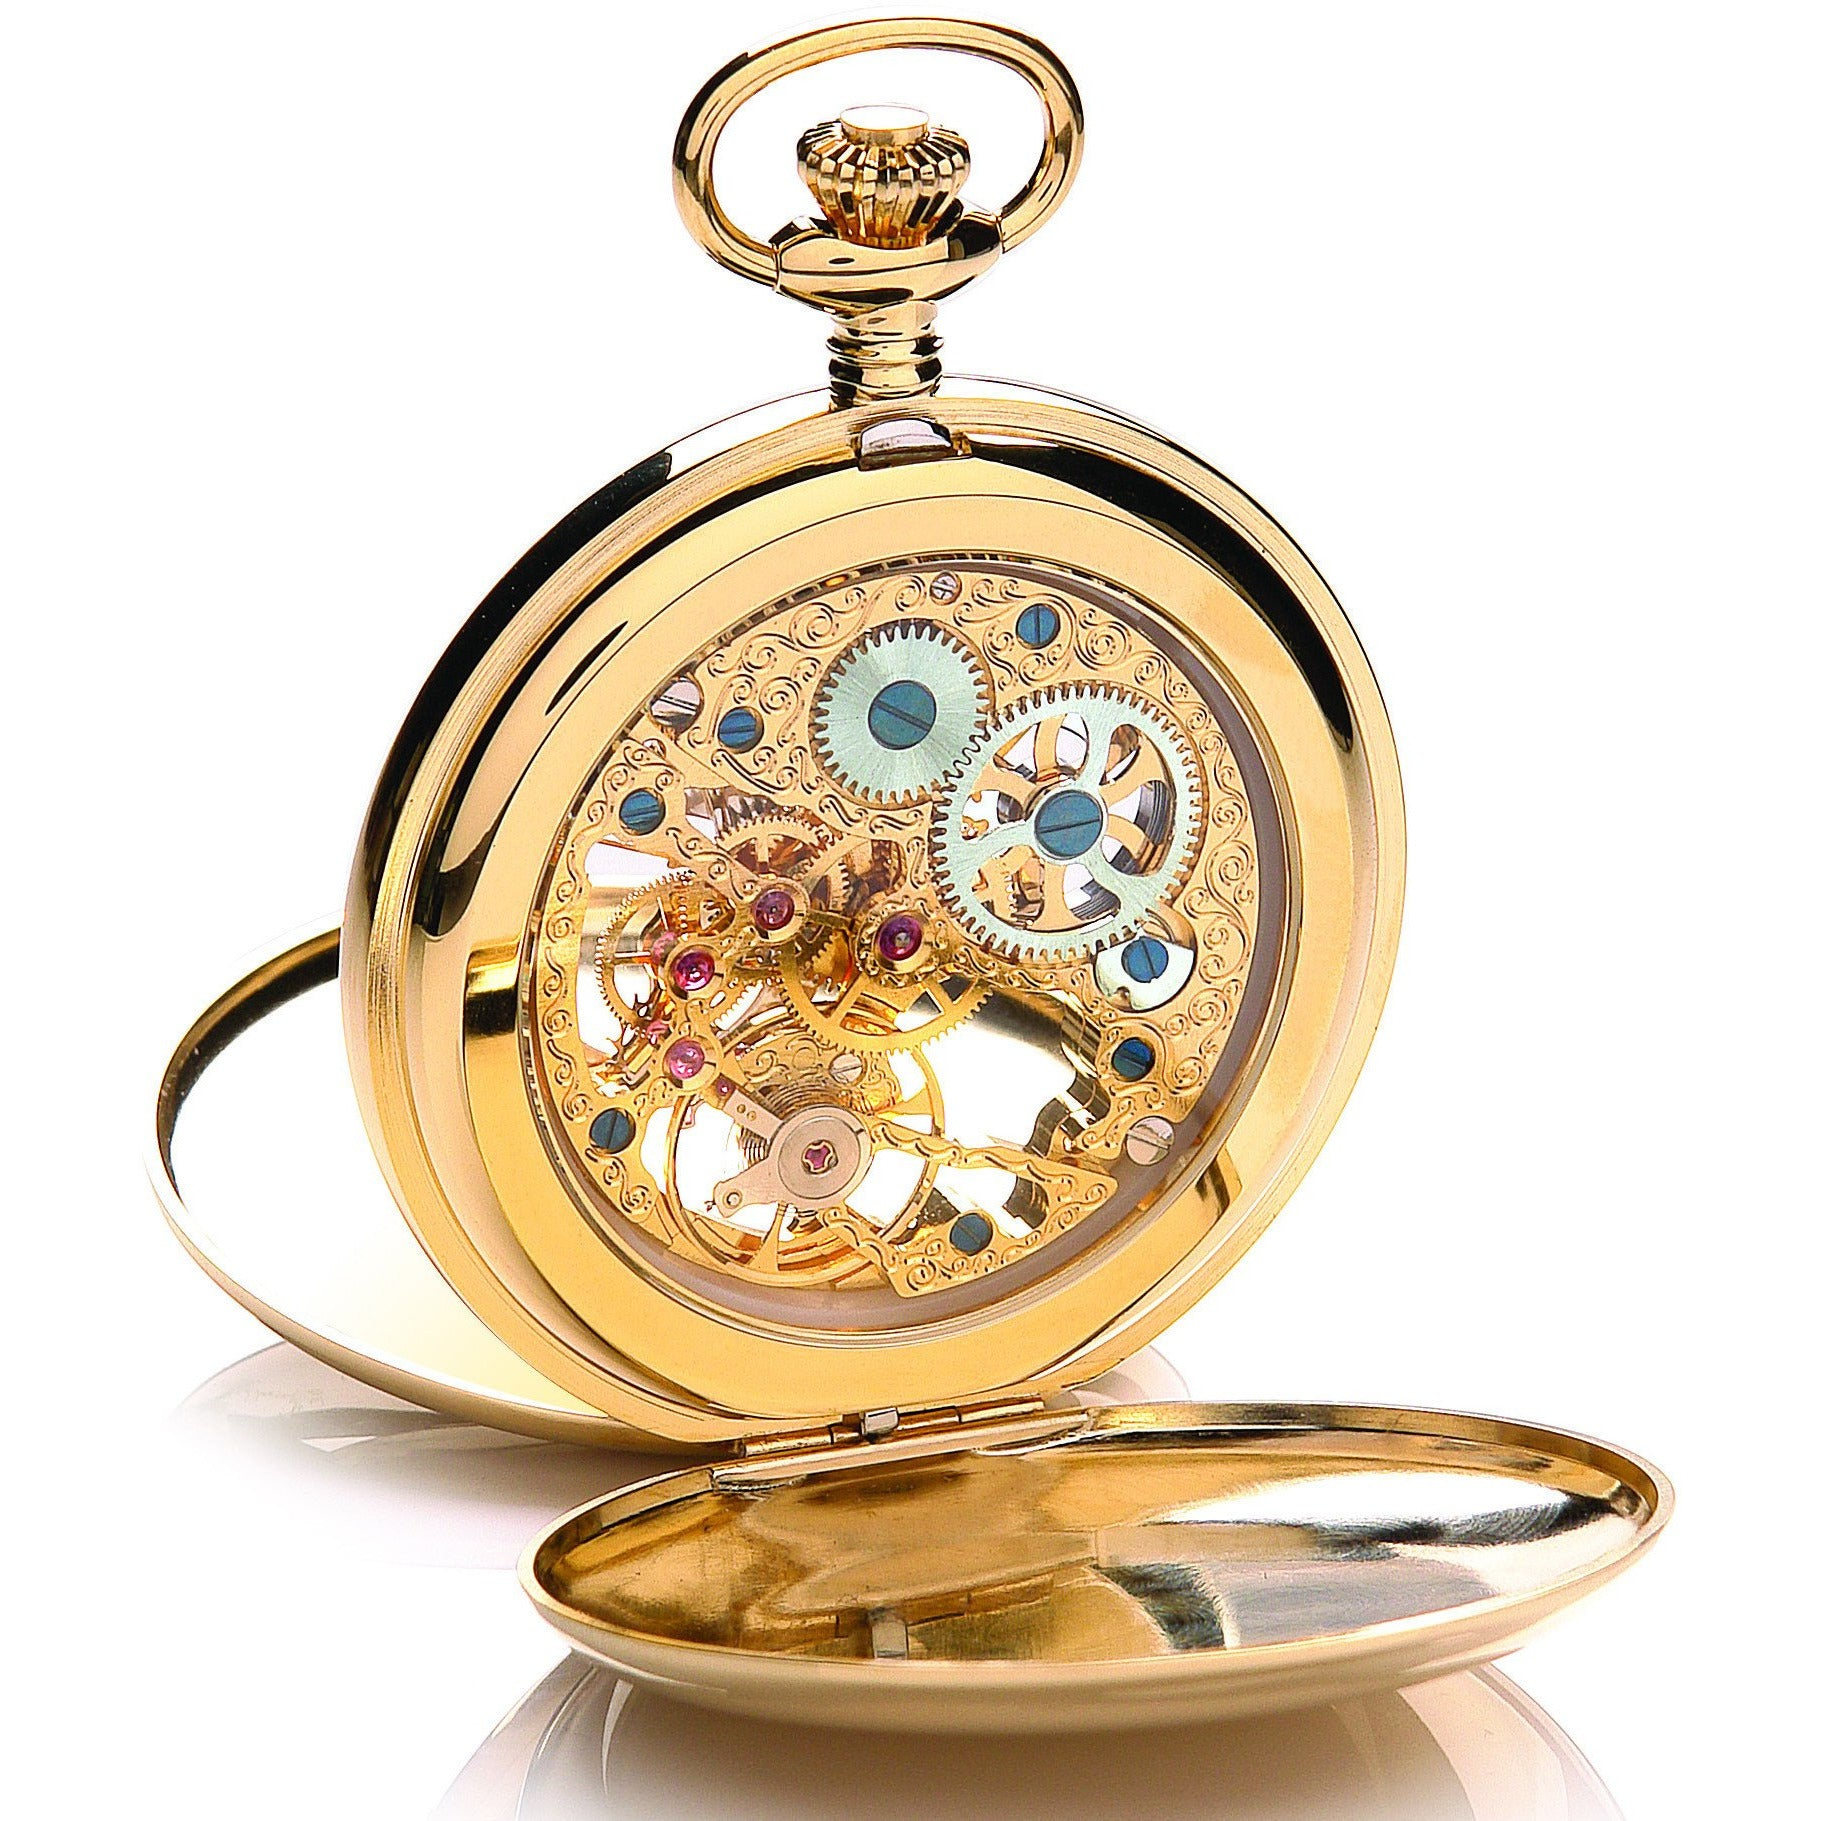 royal london men s gold pocket watch 90028 02 delivery in gold pocket watch 90028 02